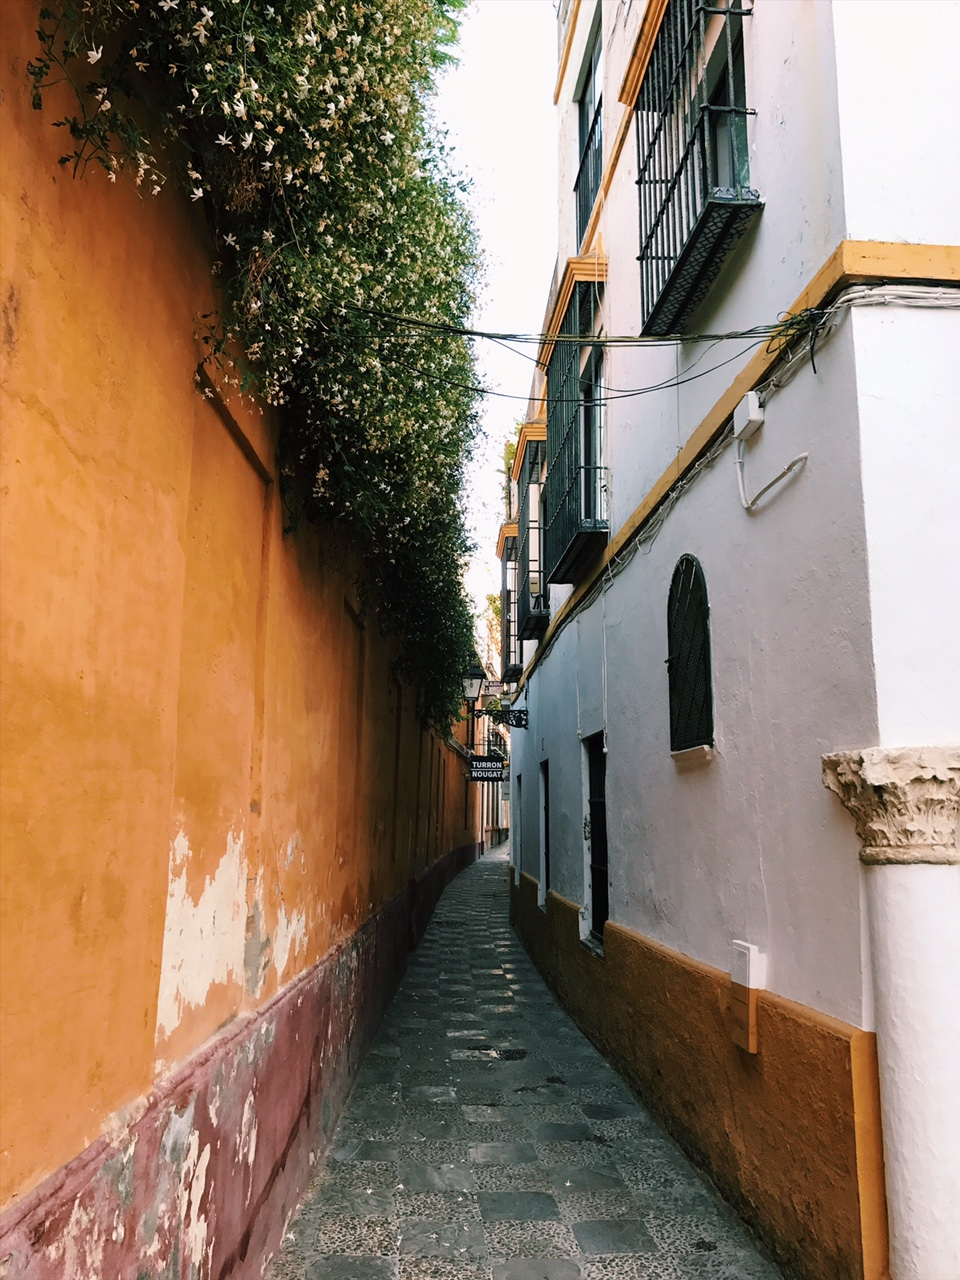 Lovely little streets and alleys of the Barrio Santa Cruz.